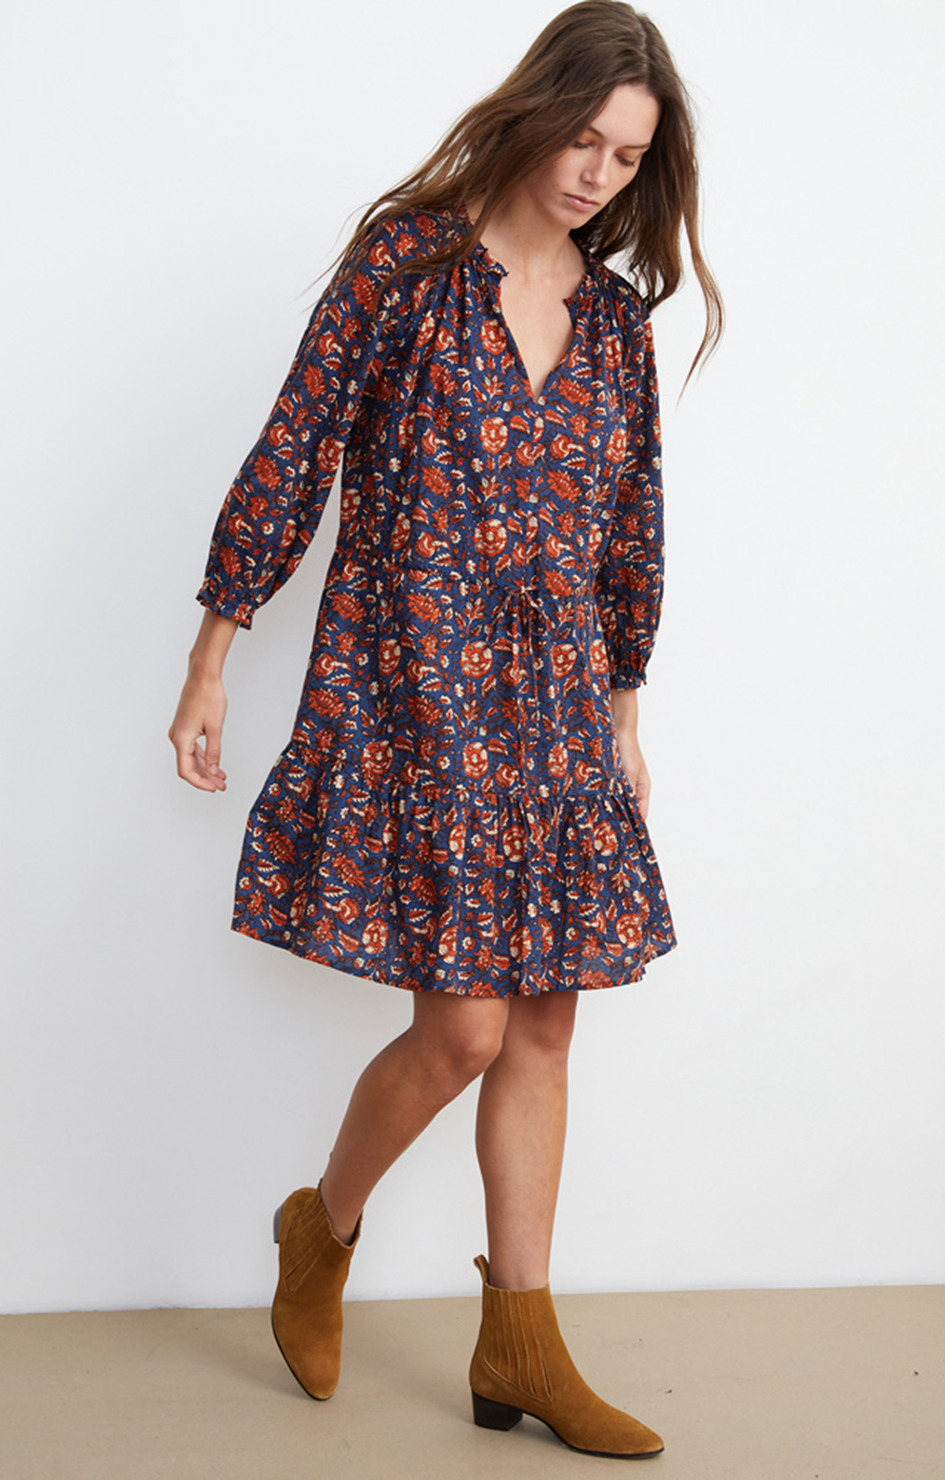 Shoshana Print Dress